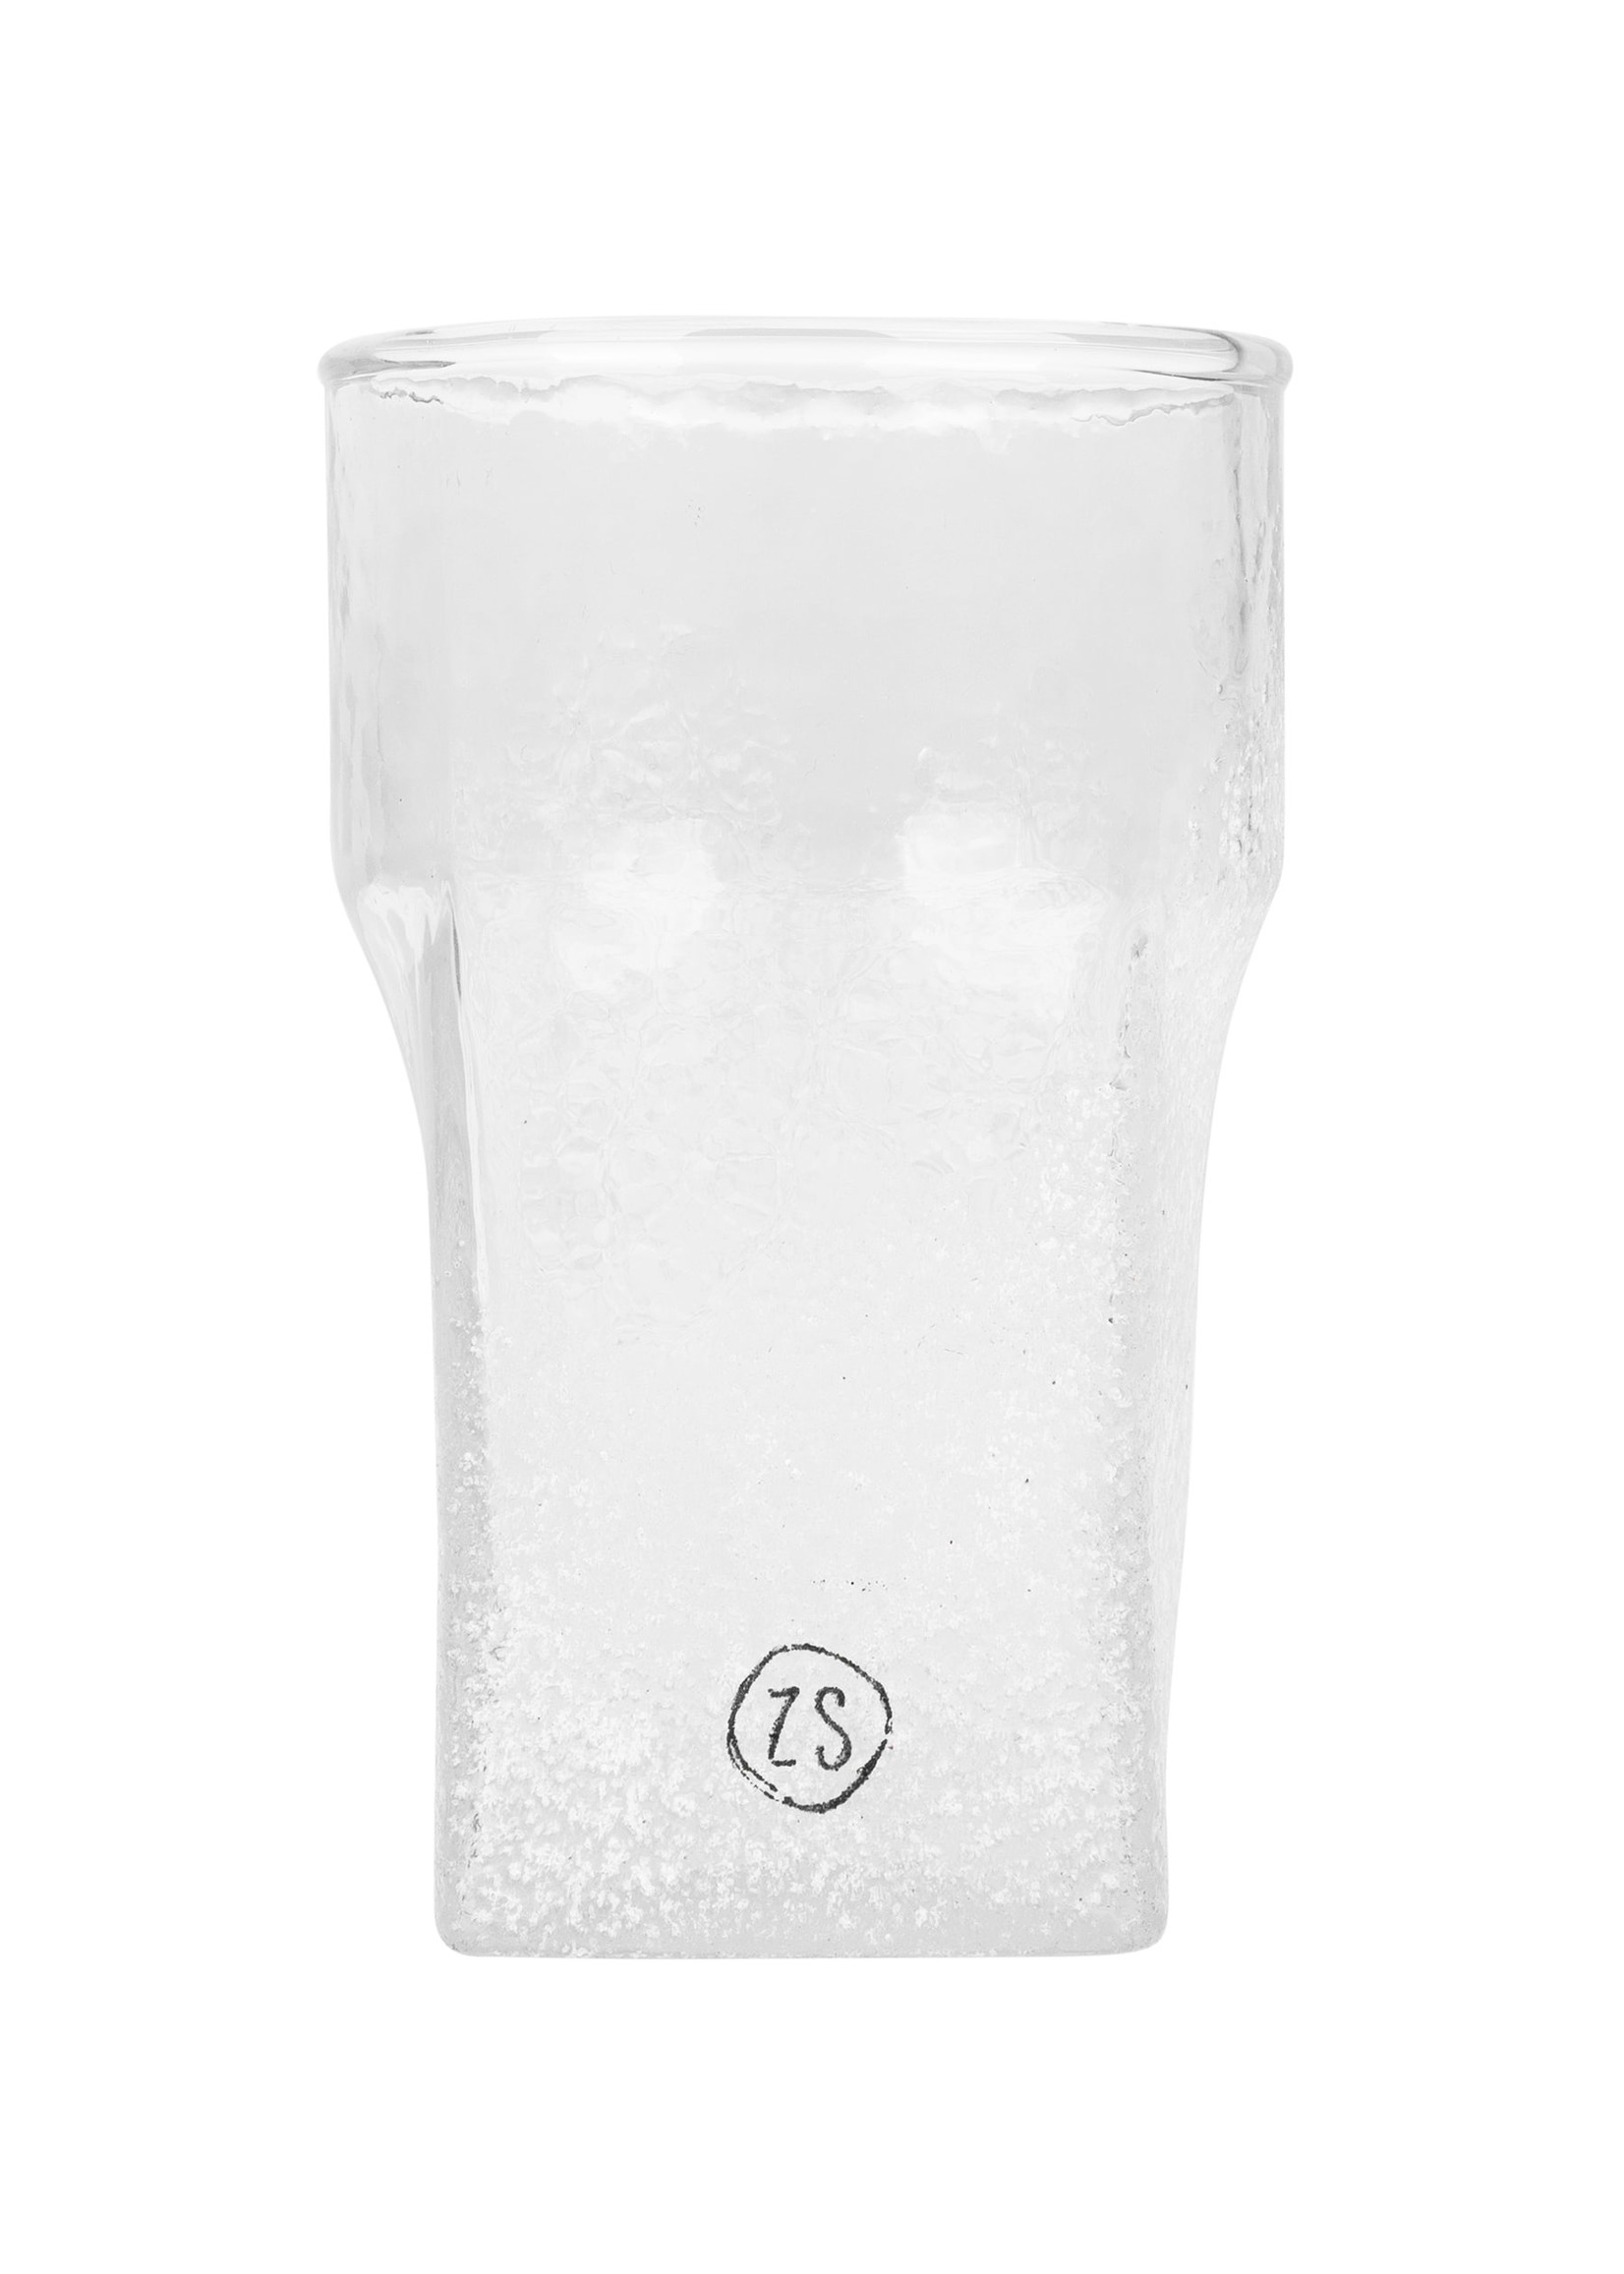 ZUSSS waxinelichthouder frosted glas